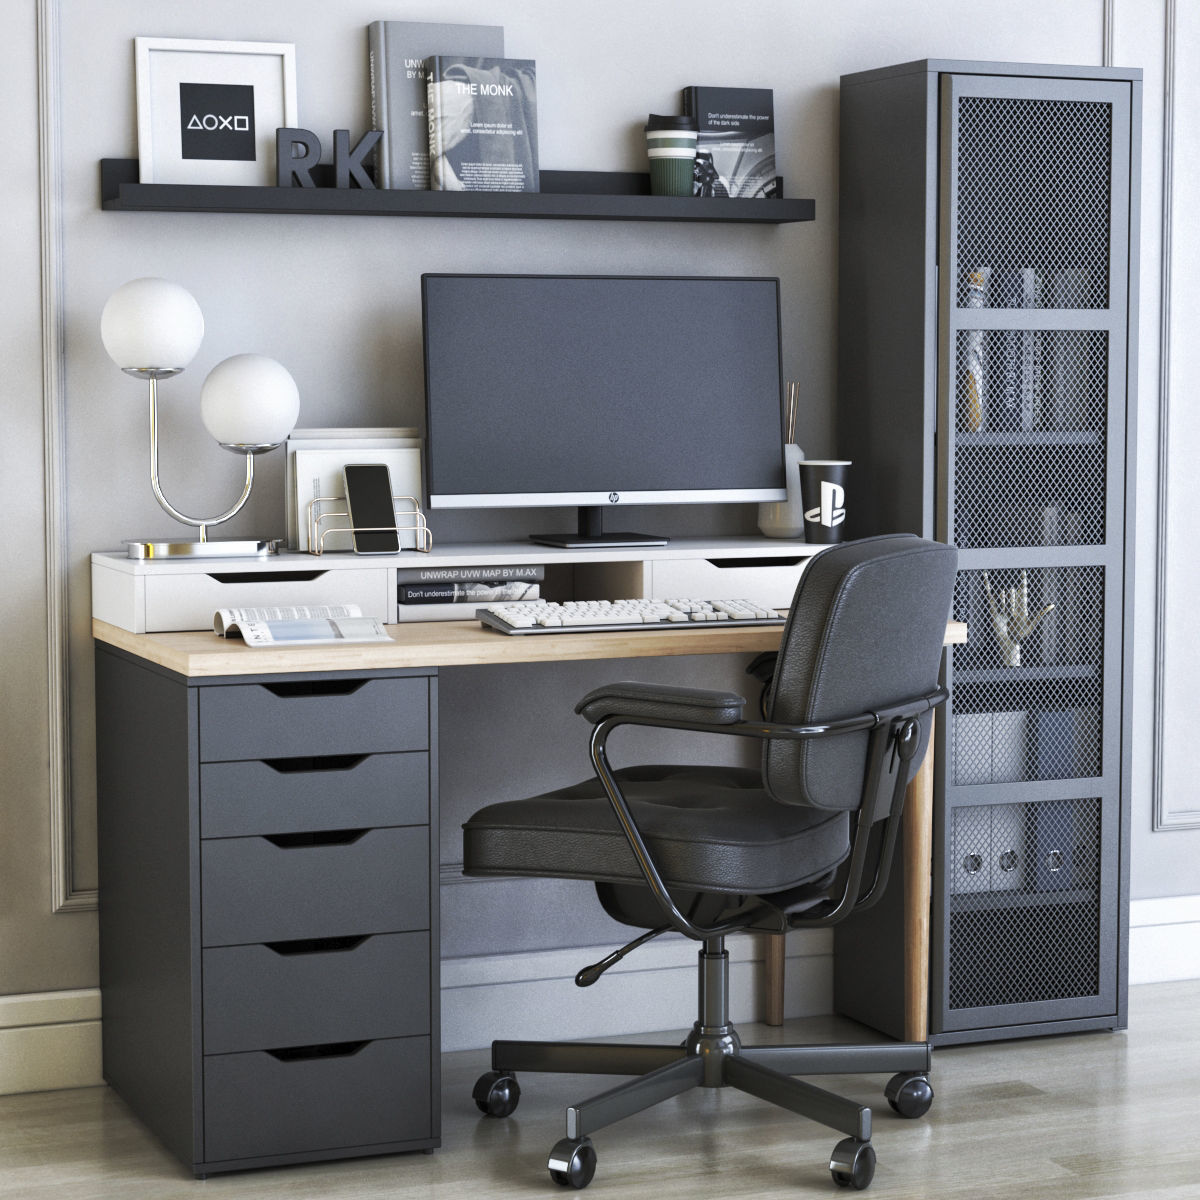 Office workplace 36